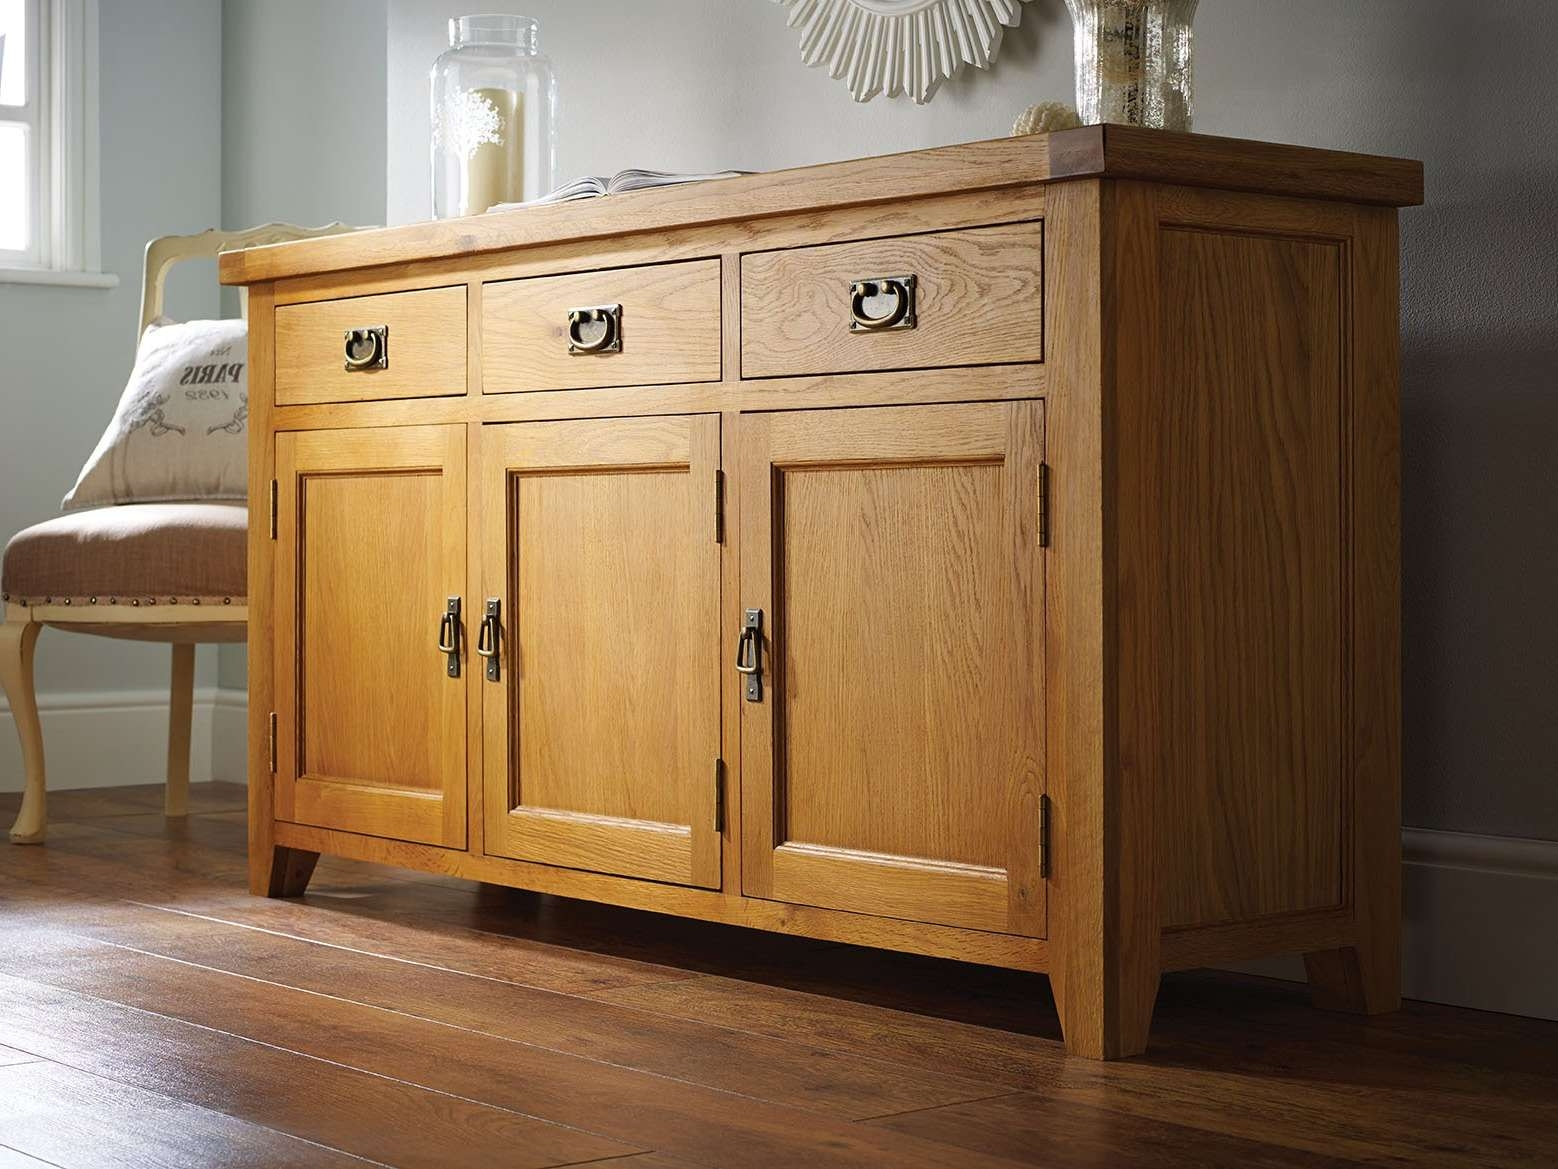 Farmhouse Country Oak Large Oak Sideboard – Just £399 – Youtube Throughout Country Sideboards (View 6 of 20)